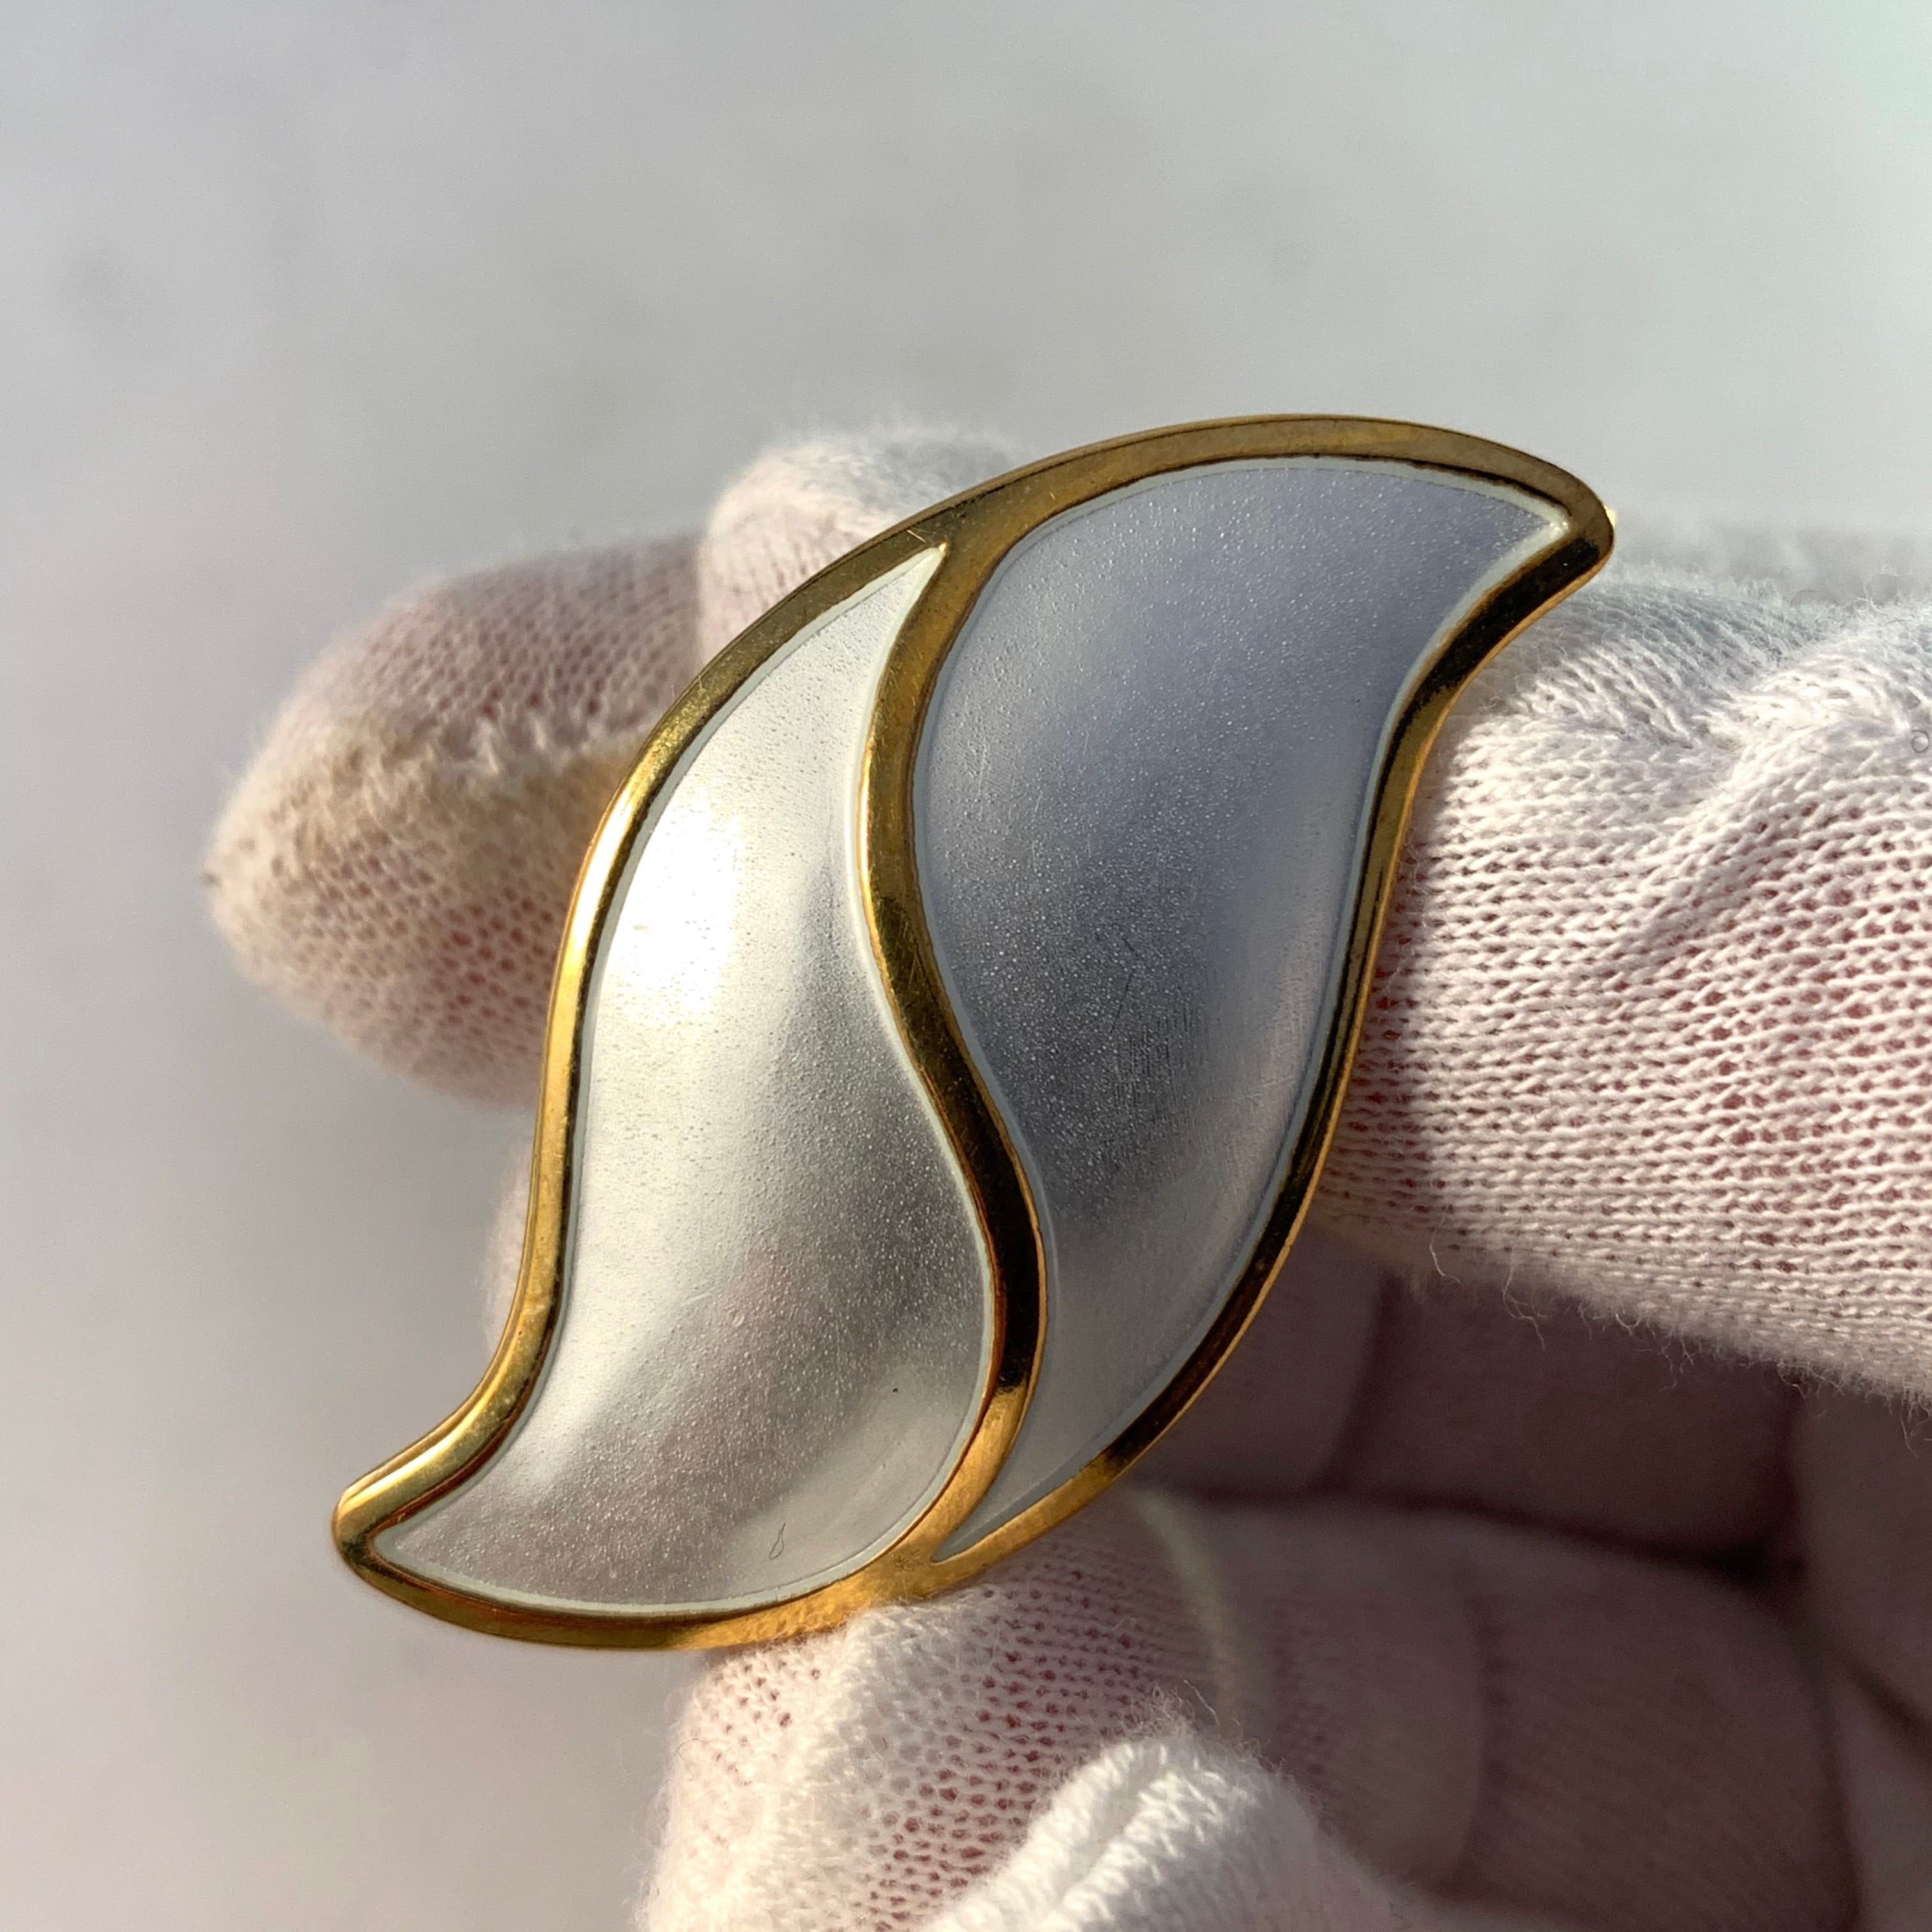 Synnøve Korssjøen, for David Andersen, Norway. Bold Vintage Sterling Silver White Enamel Ring.